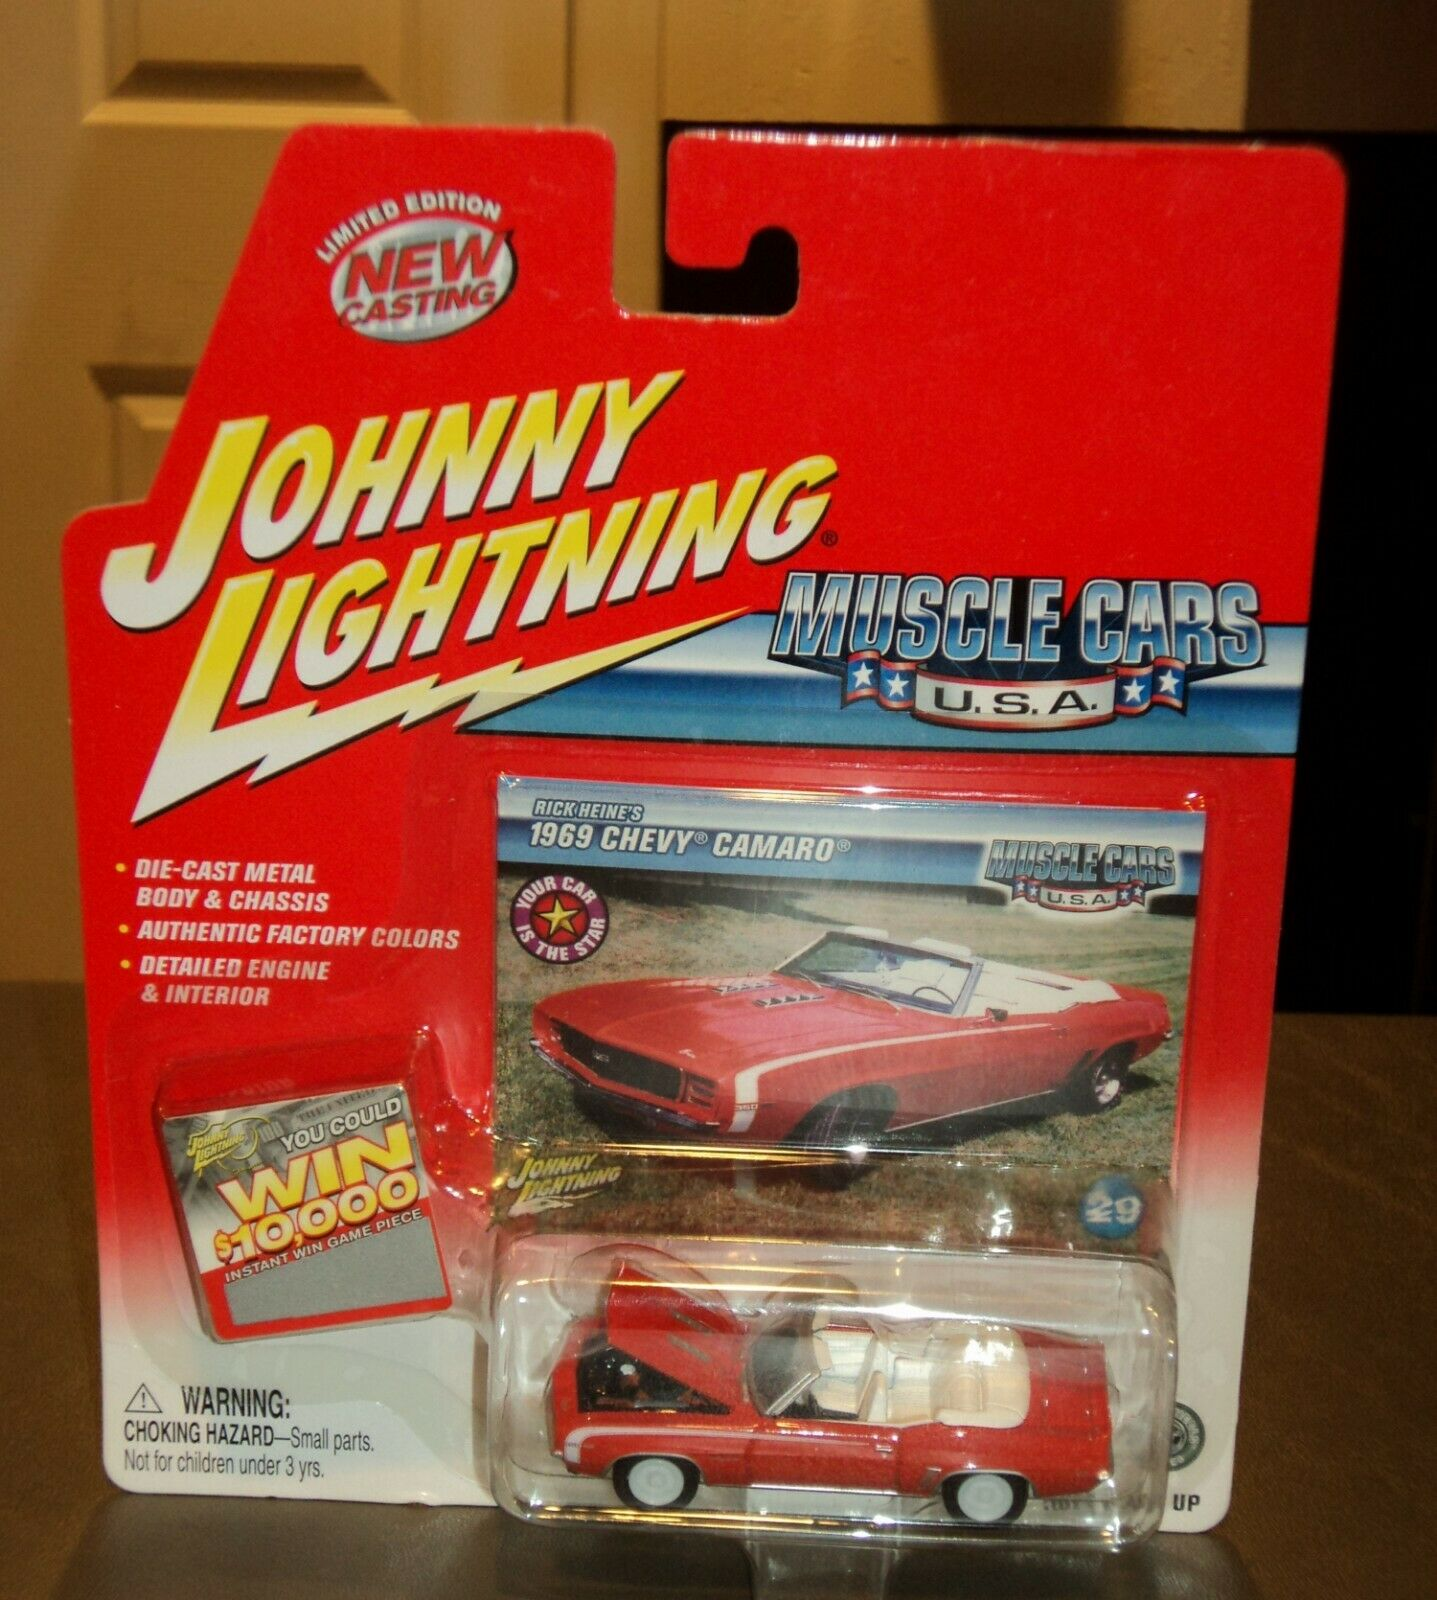 Johnny  bianca Lightning  Muscle Cars USA 69 Chevy Camaro Chase 1969 Rick Heine's